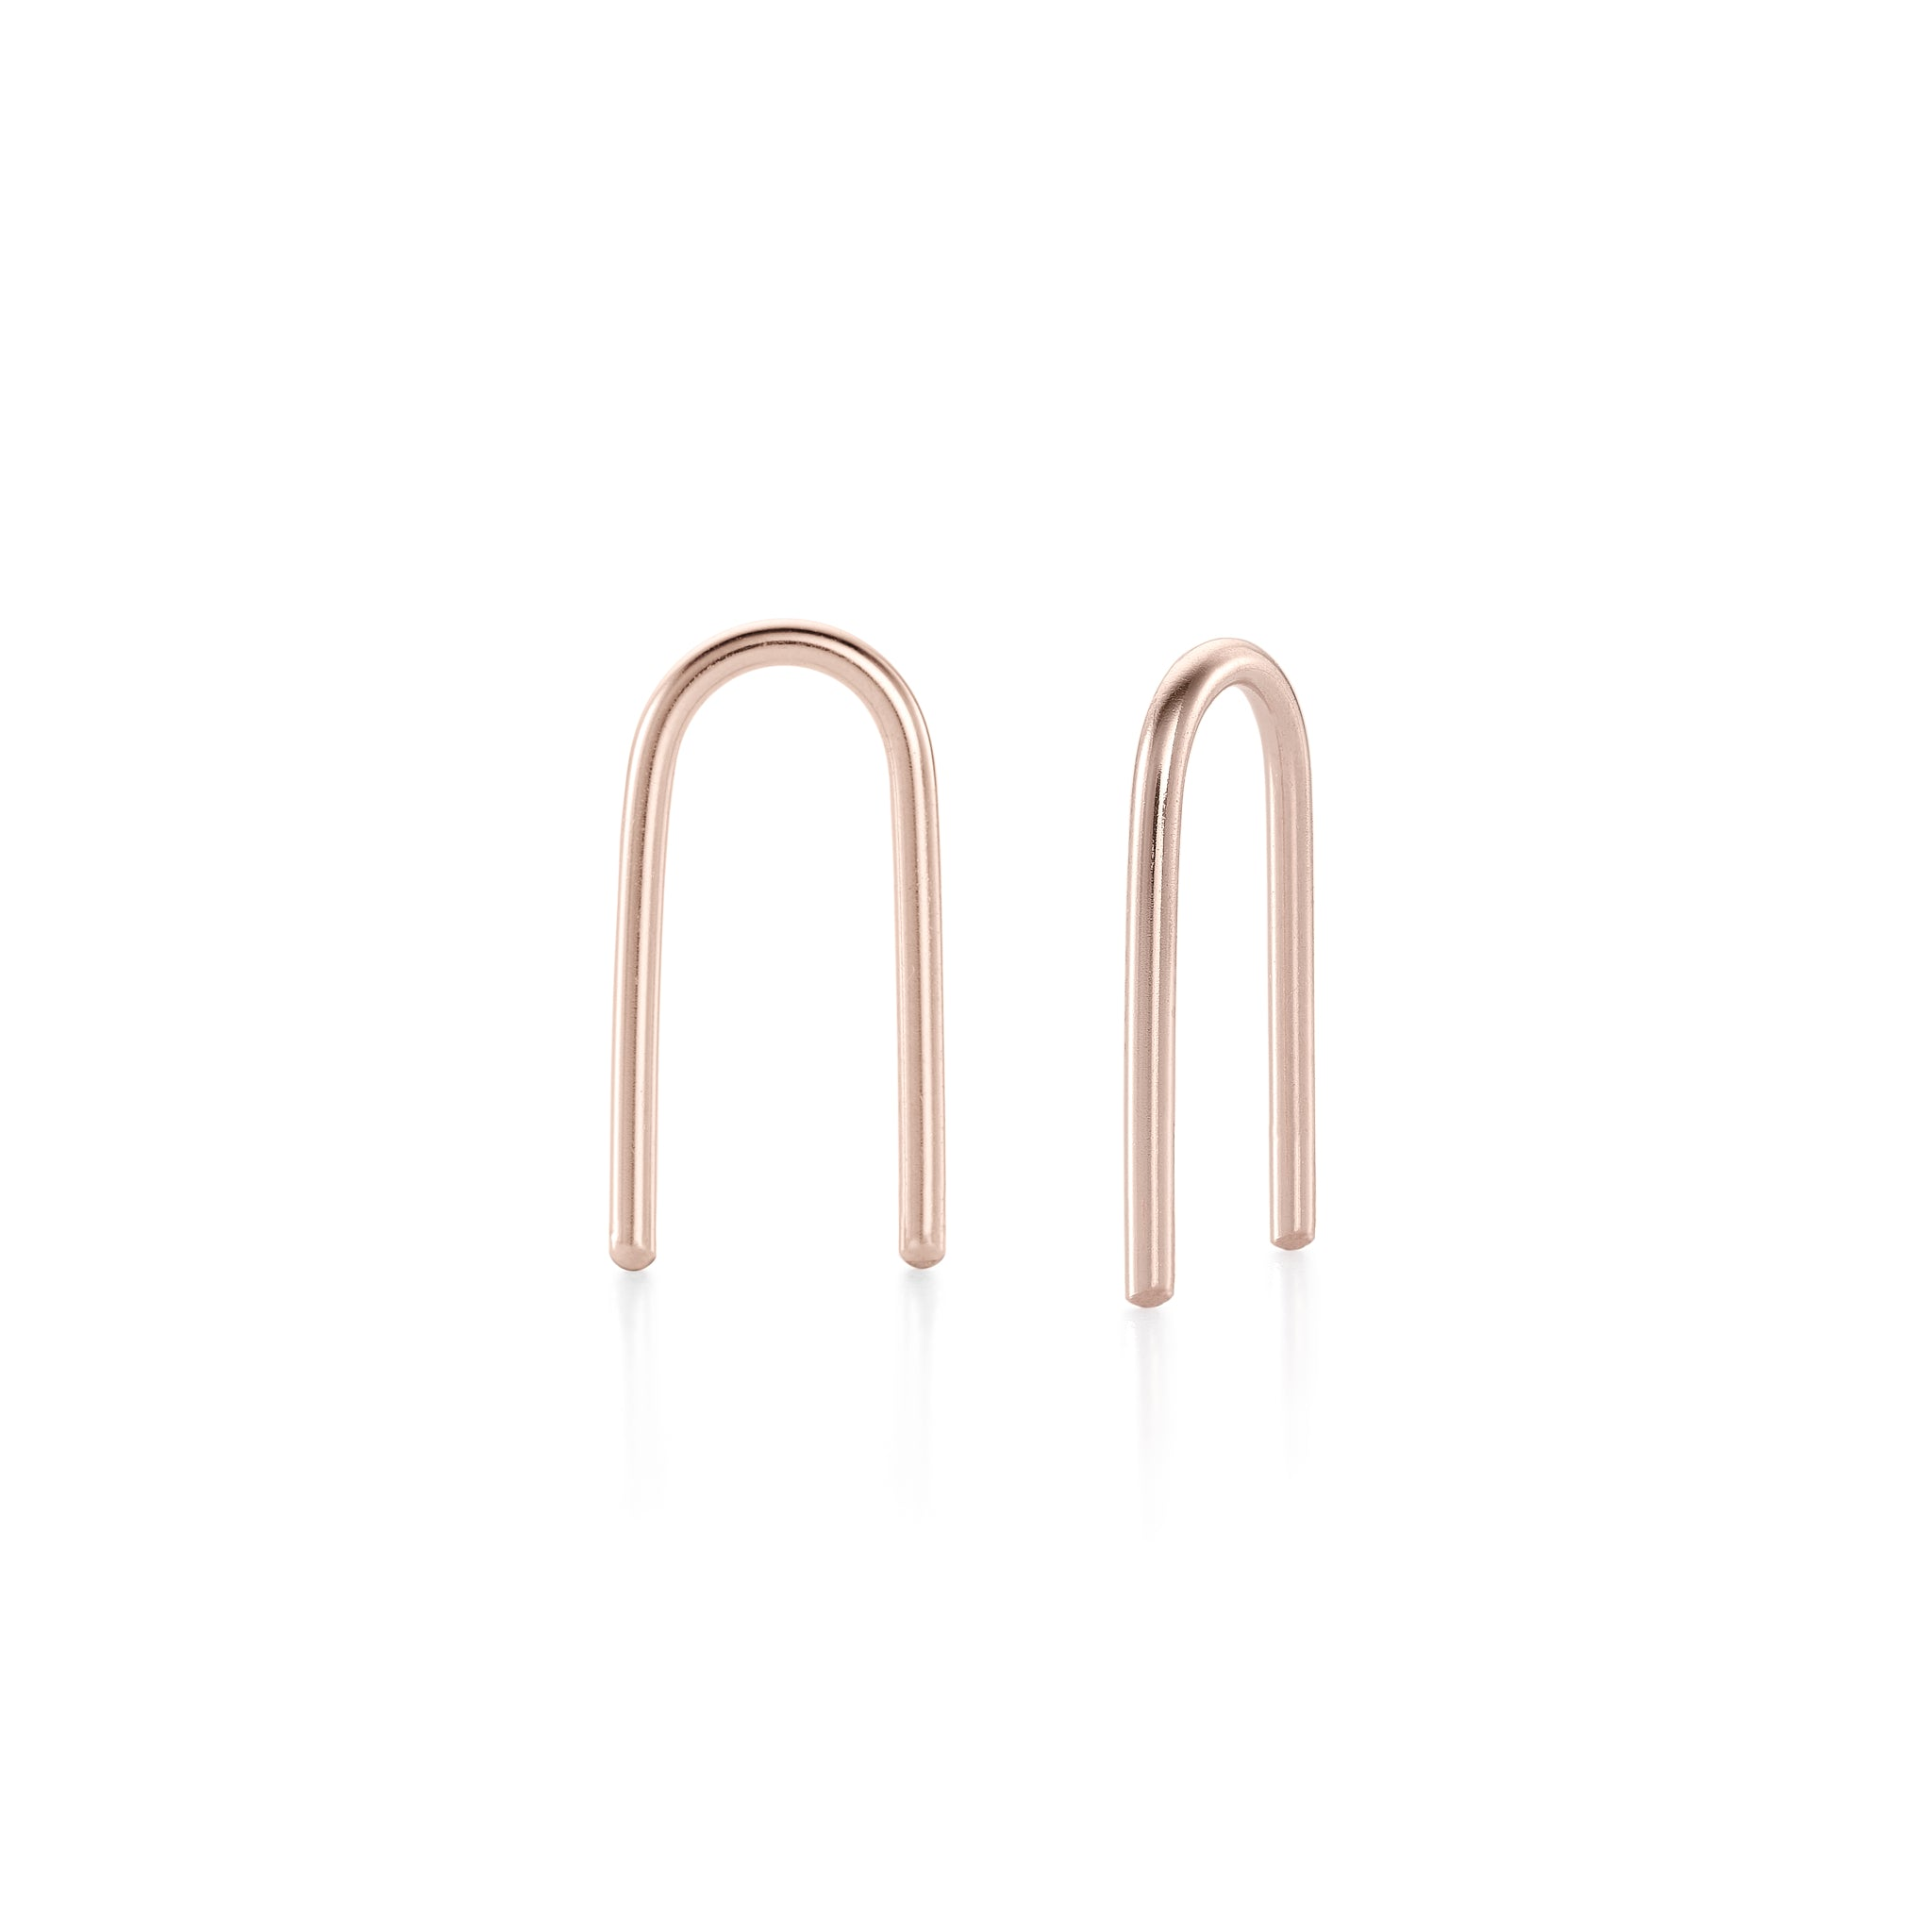 U-Shaped Earrings - Rose Gold